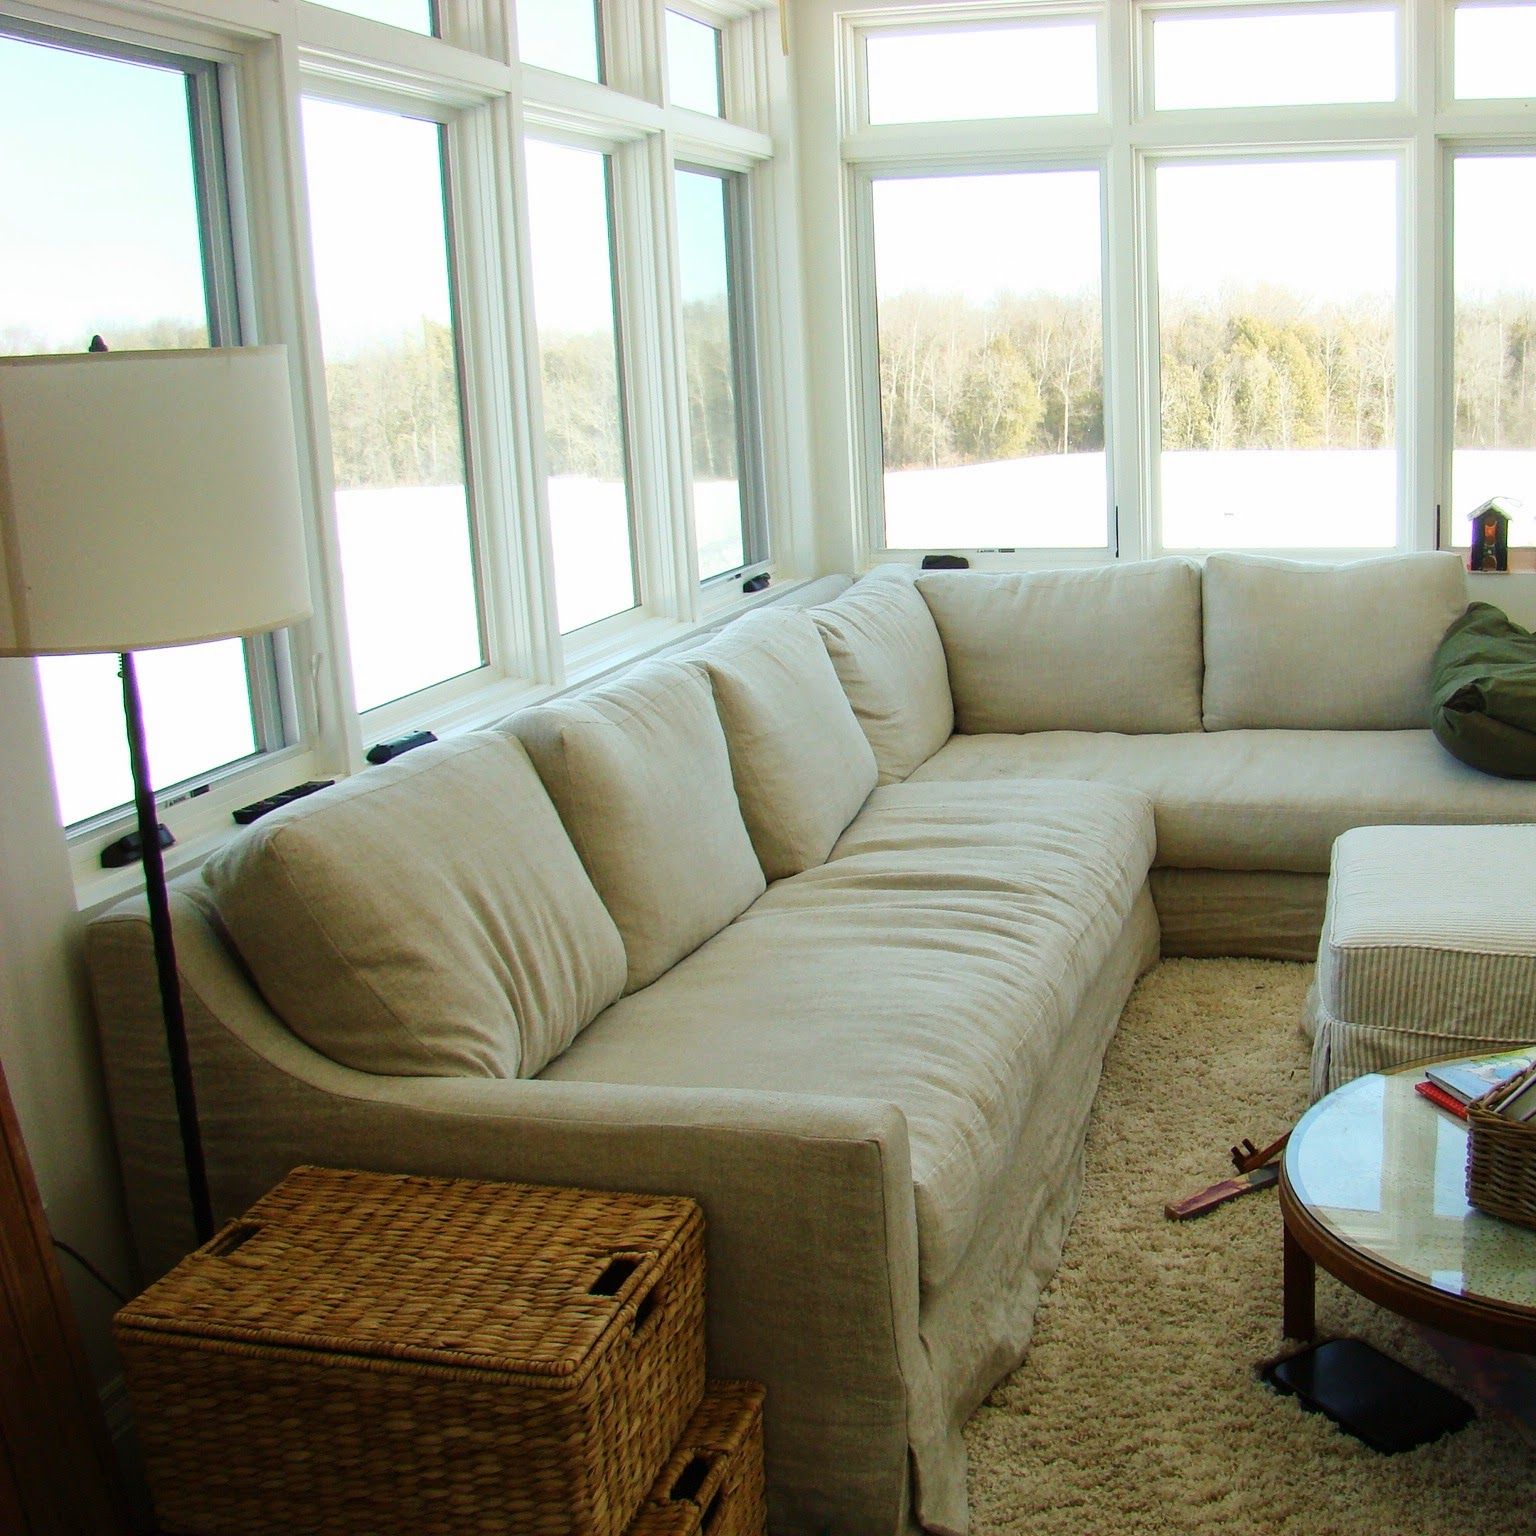 trends cool a budget simple slipcovers white amazing linen design home to slipcover on fresh interior sofa excellent